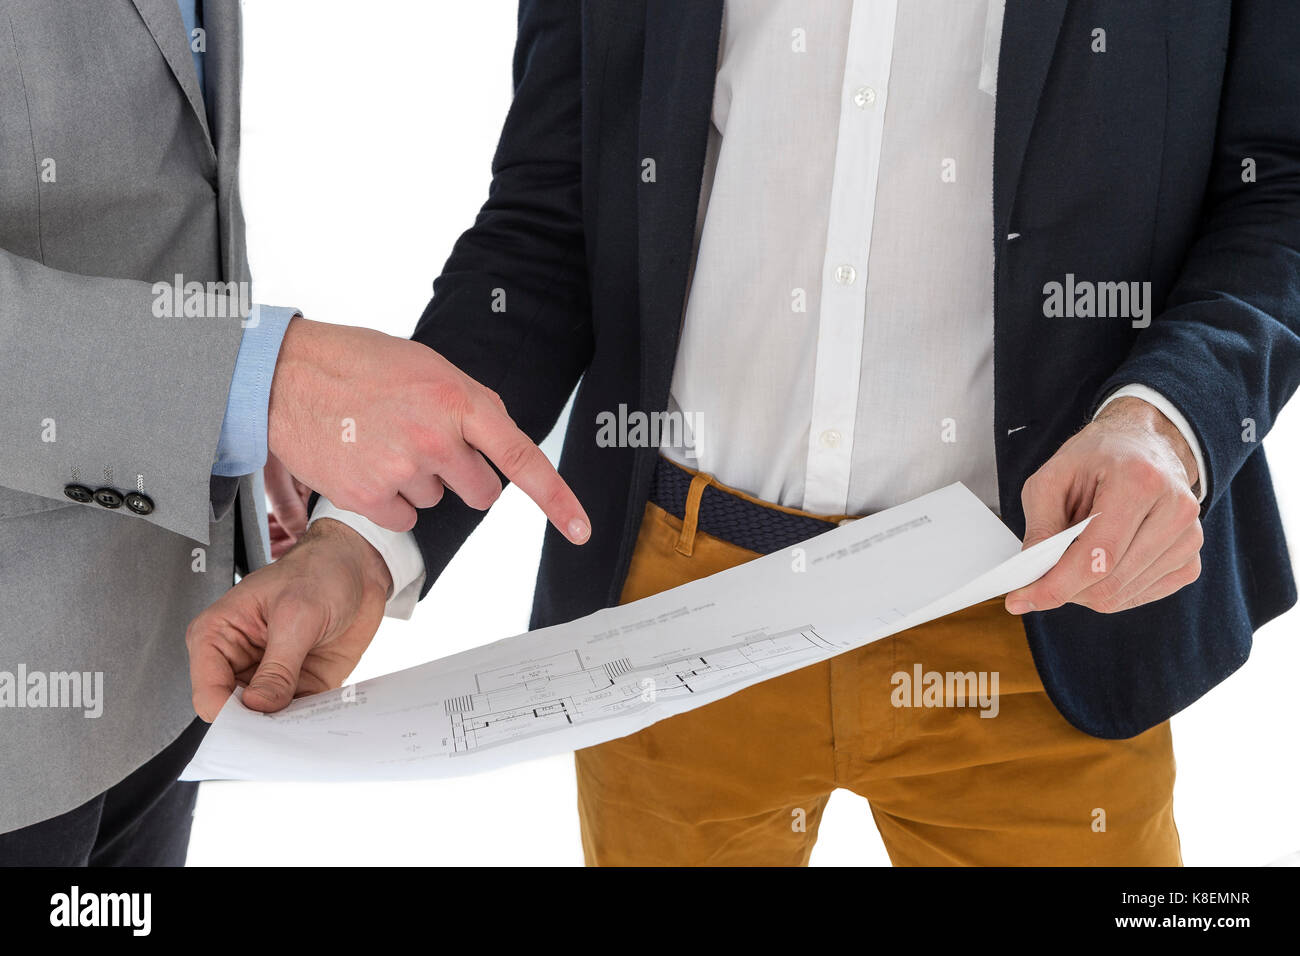 Real-estate agent showing house plans to a businessman. - Stock Image